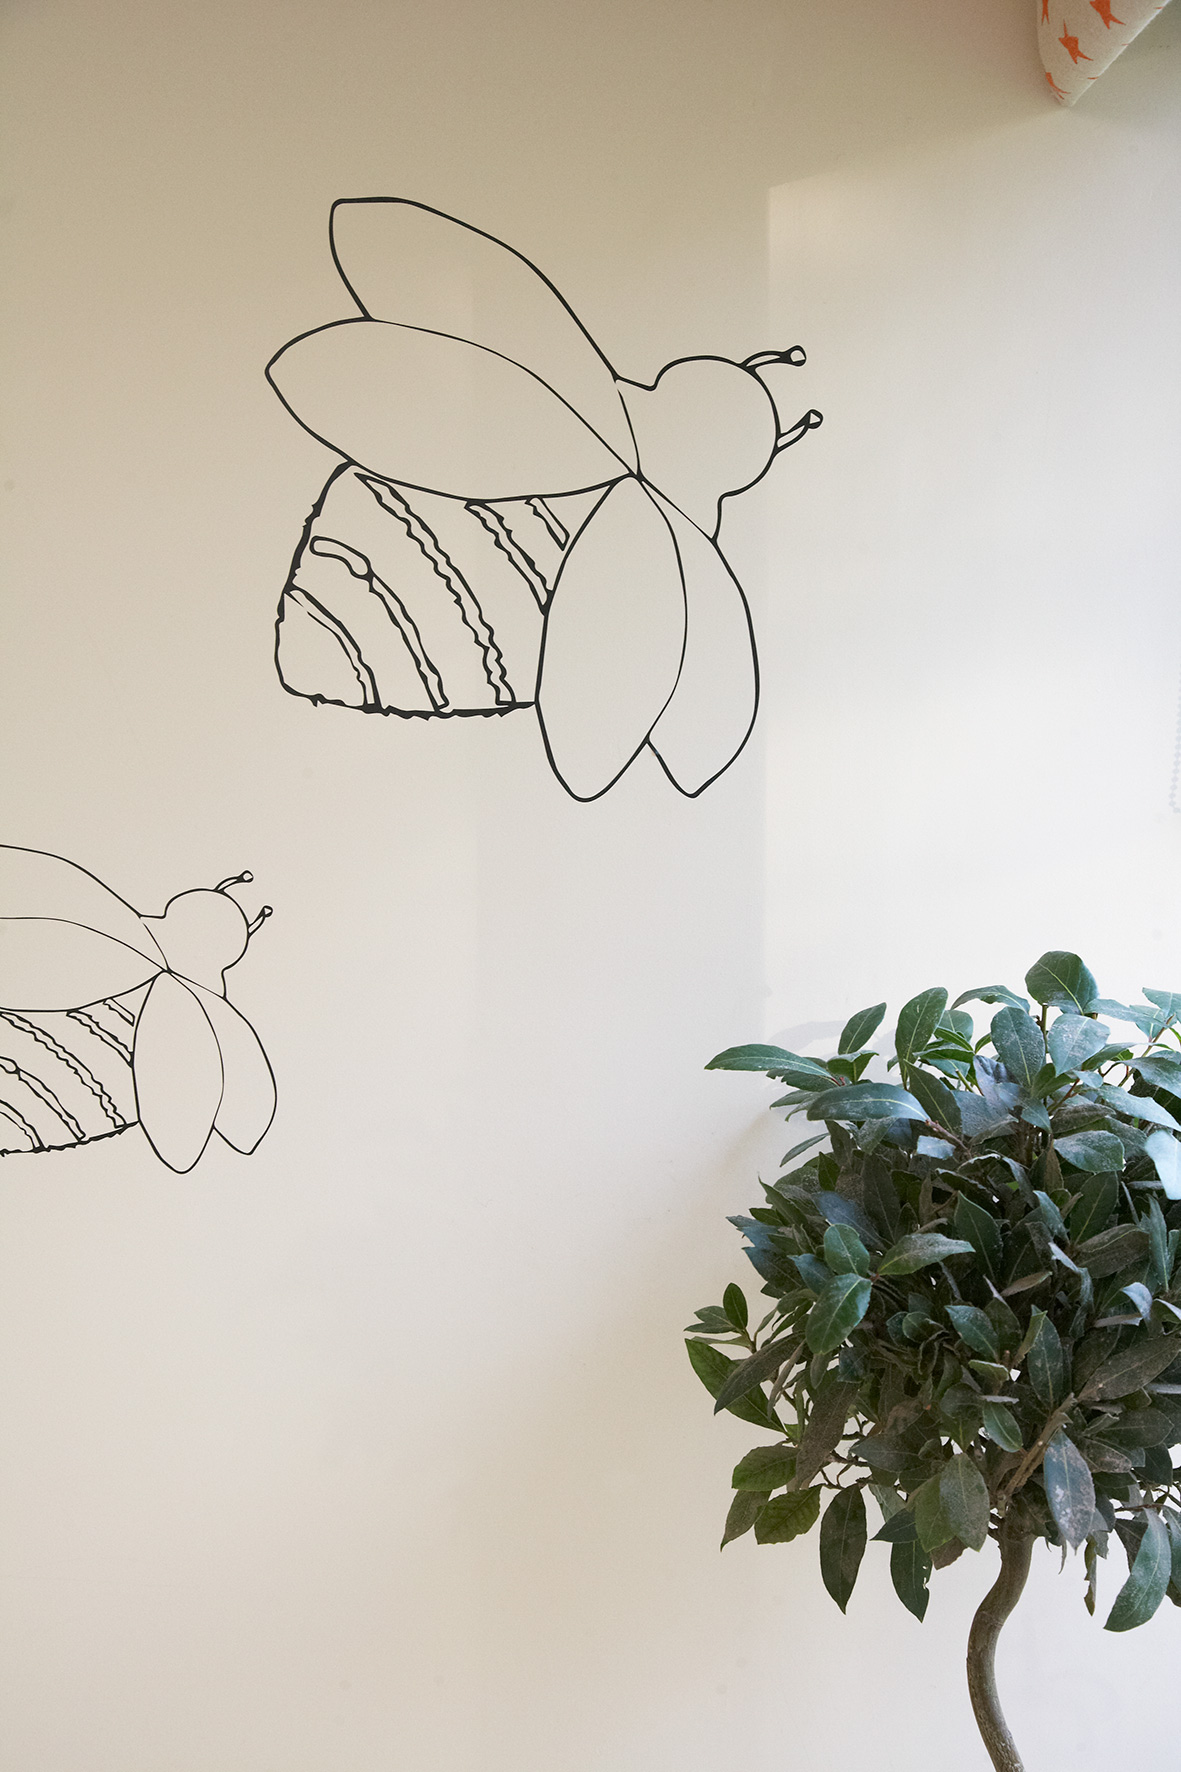 17-Decorcafe-nikki-rees-childbase-partnership-nursery-bumble-bee-wall-decals-indoor-plant